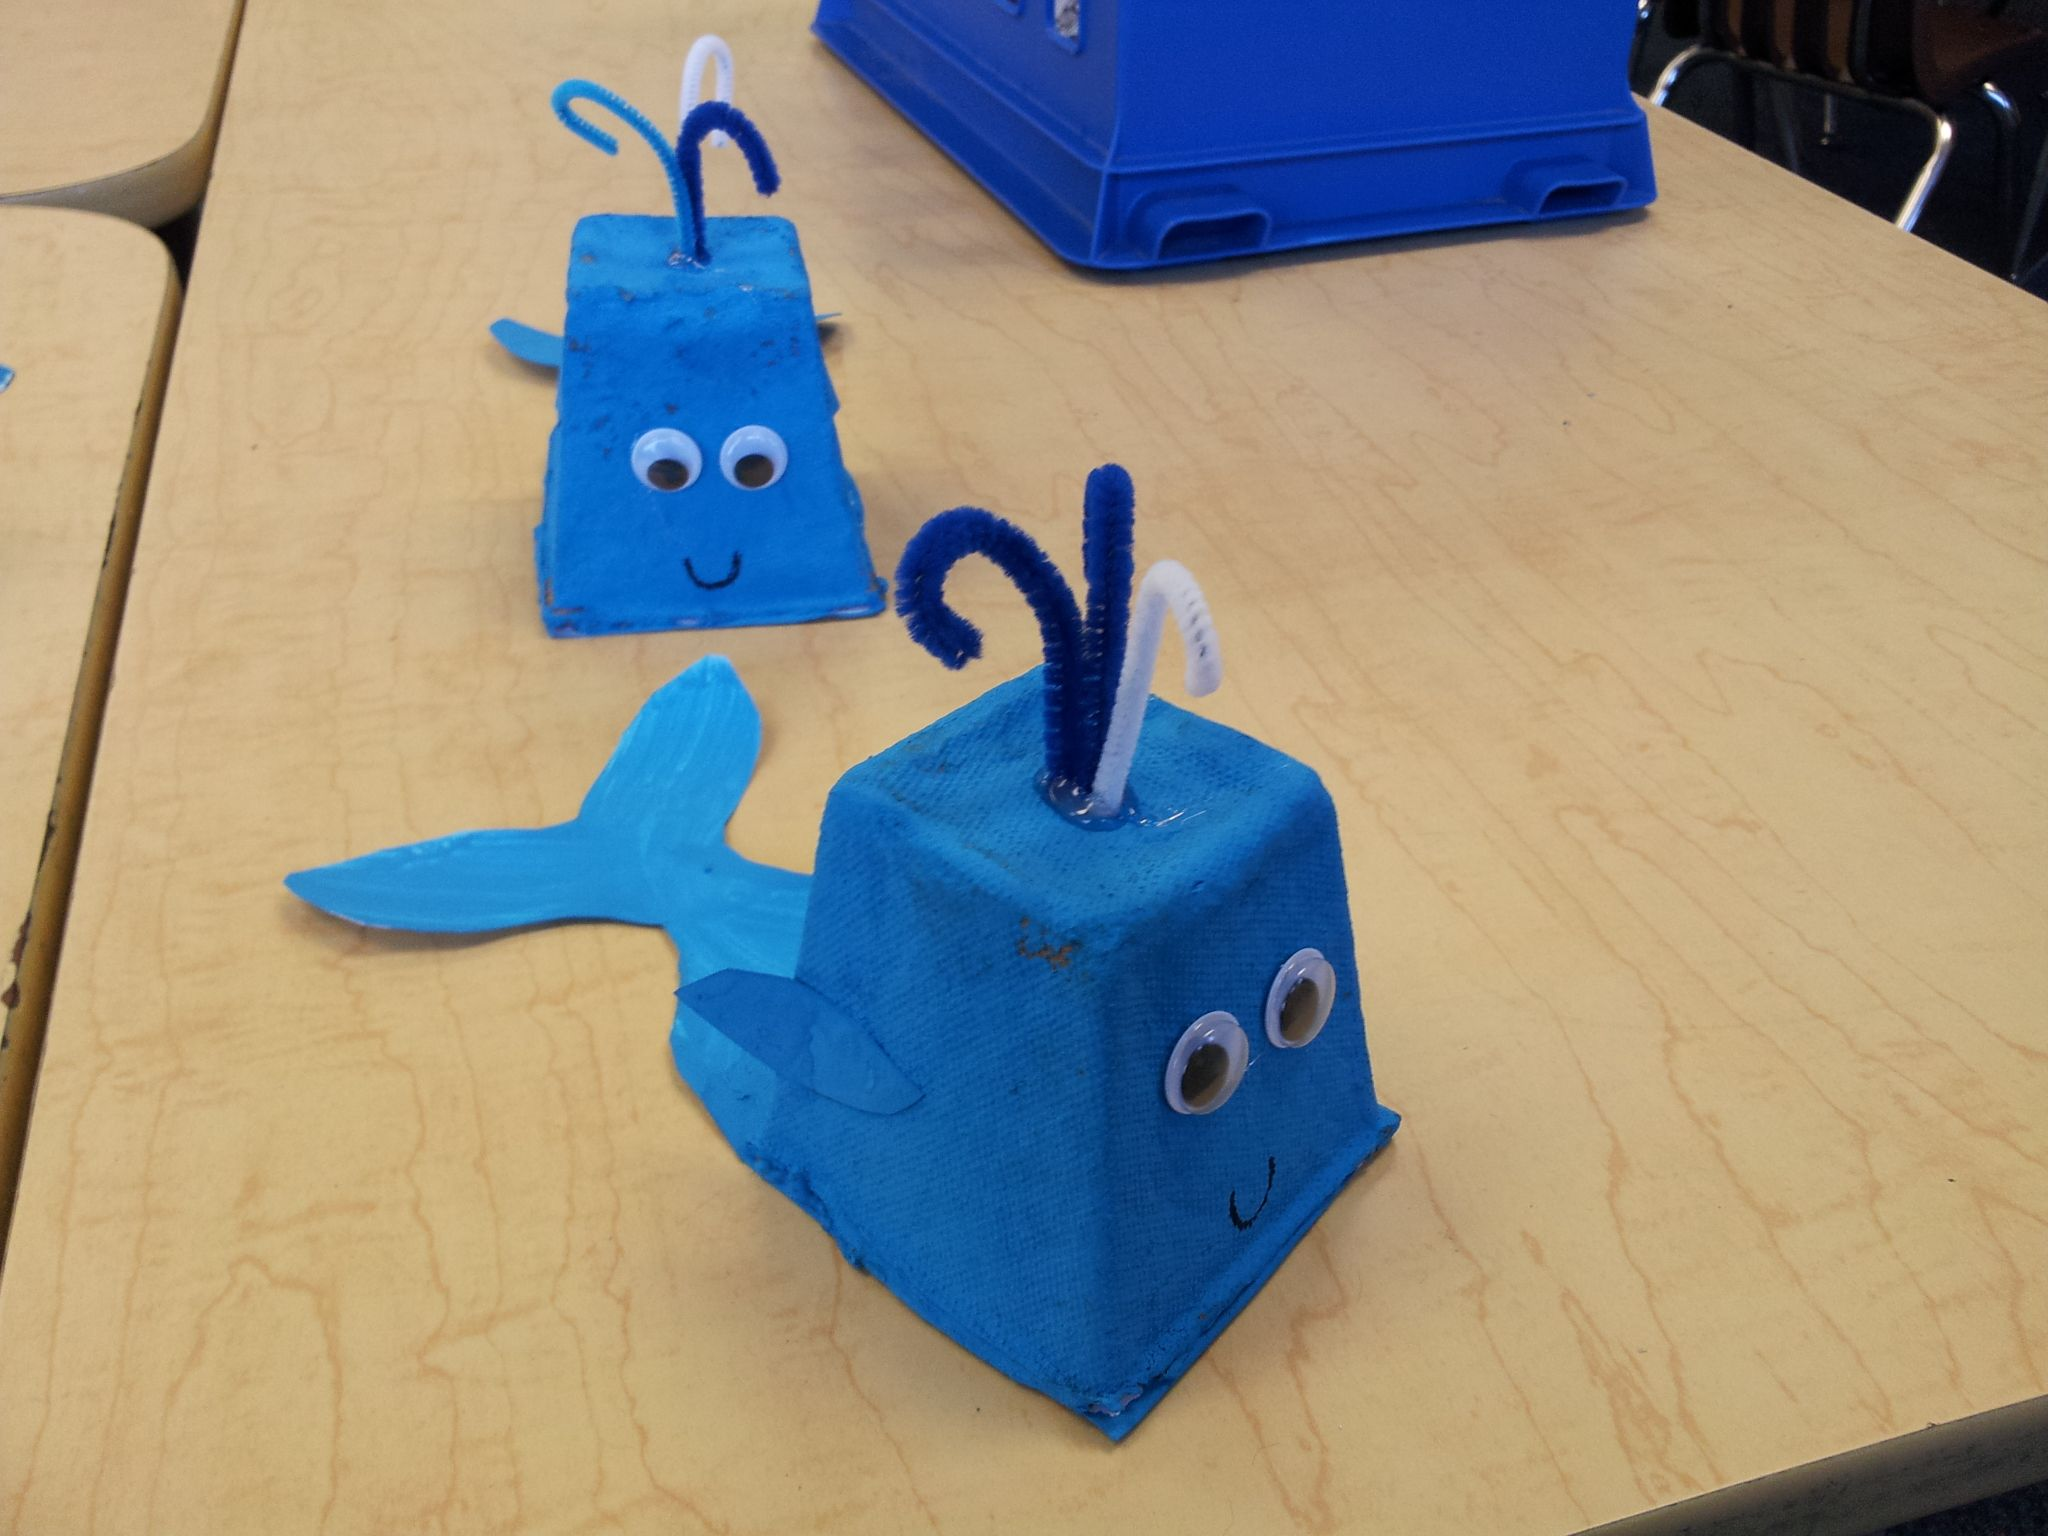 Ocean blue whale craft made from biodegradable seedling planters